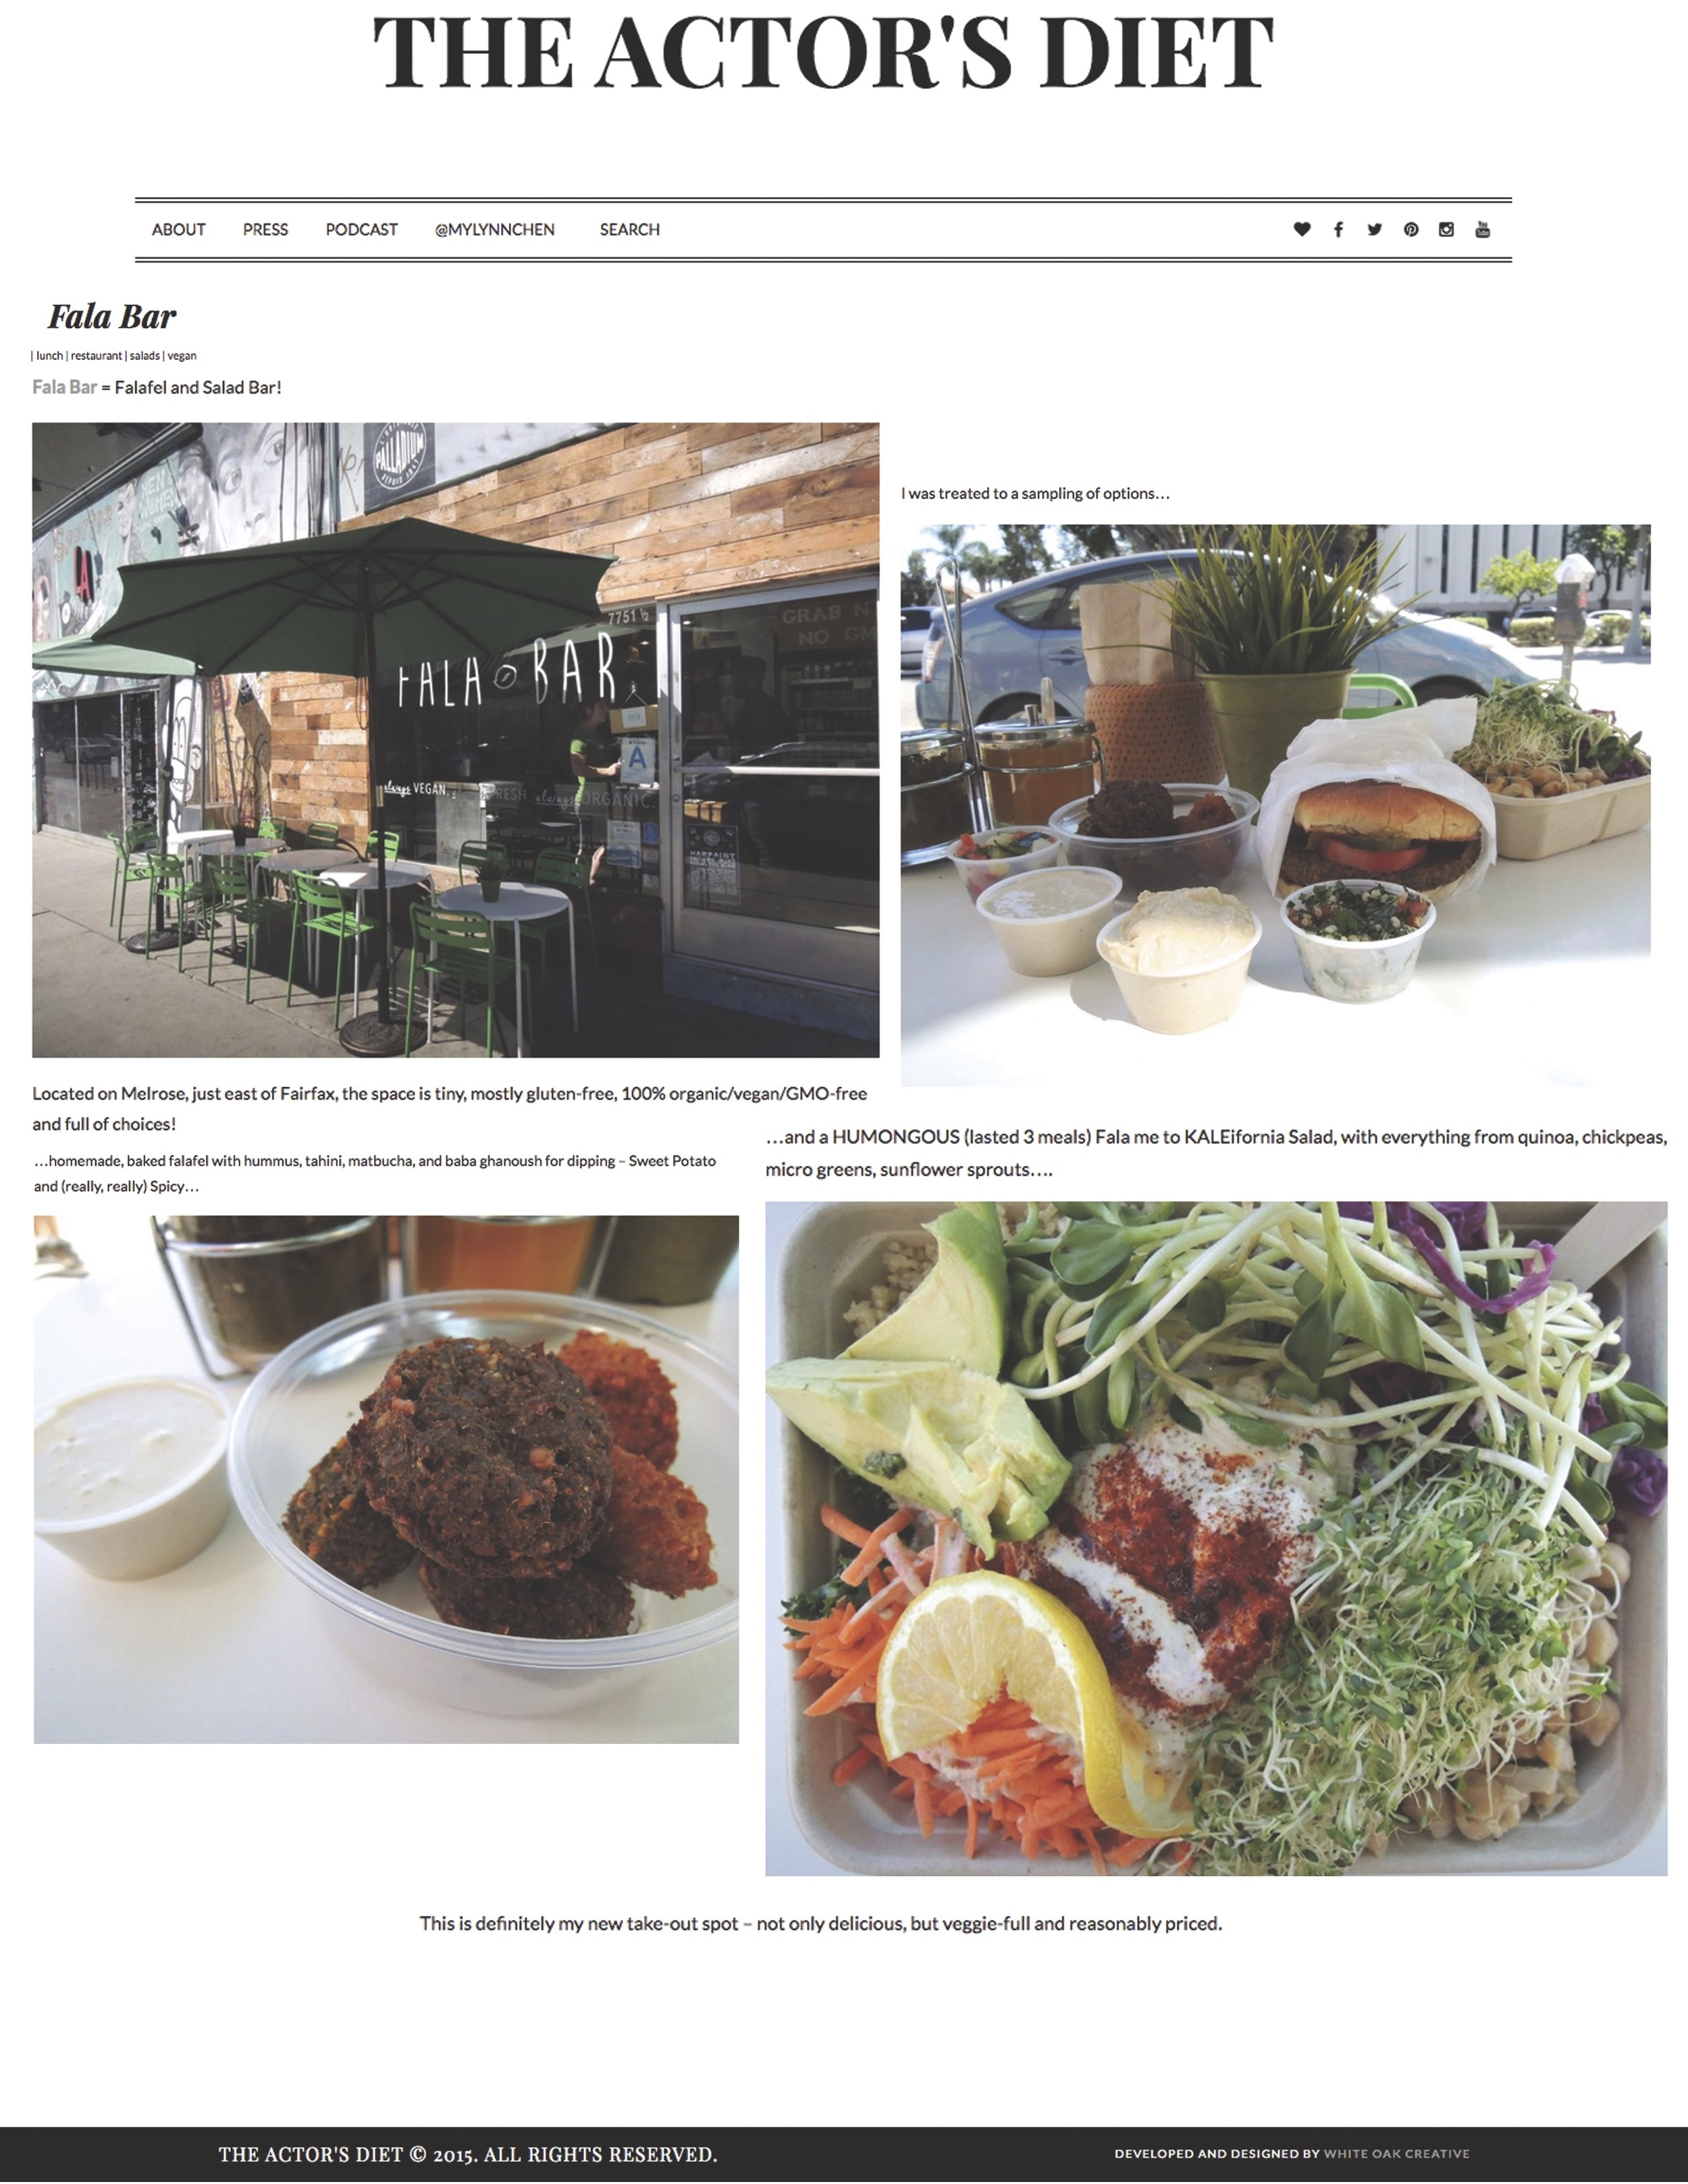 Report about Fala Bar / The Actor's Diet